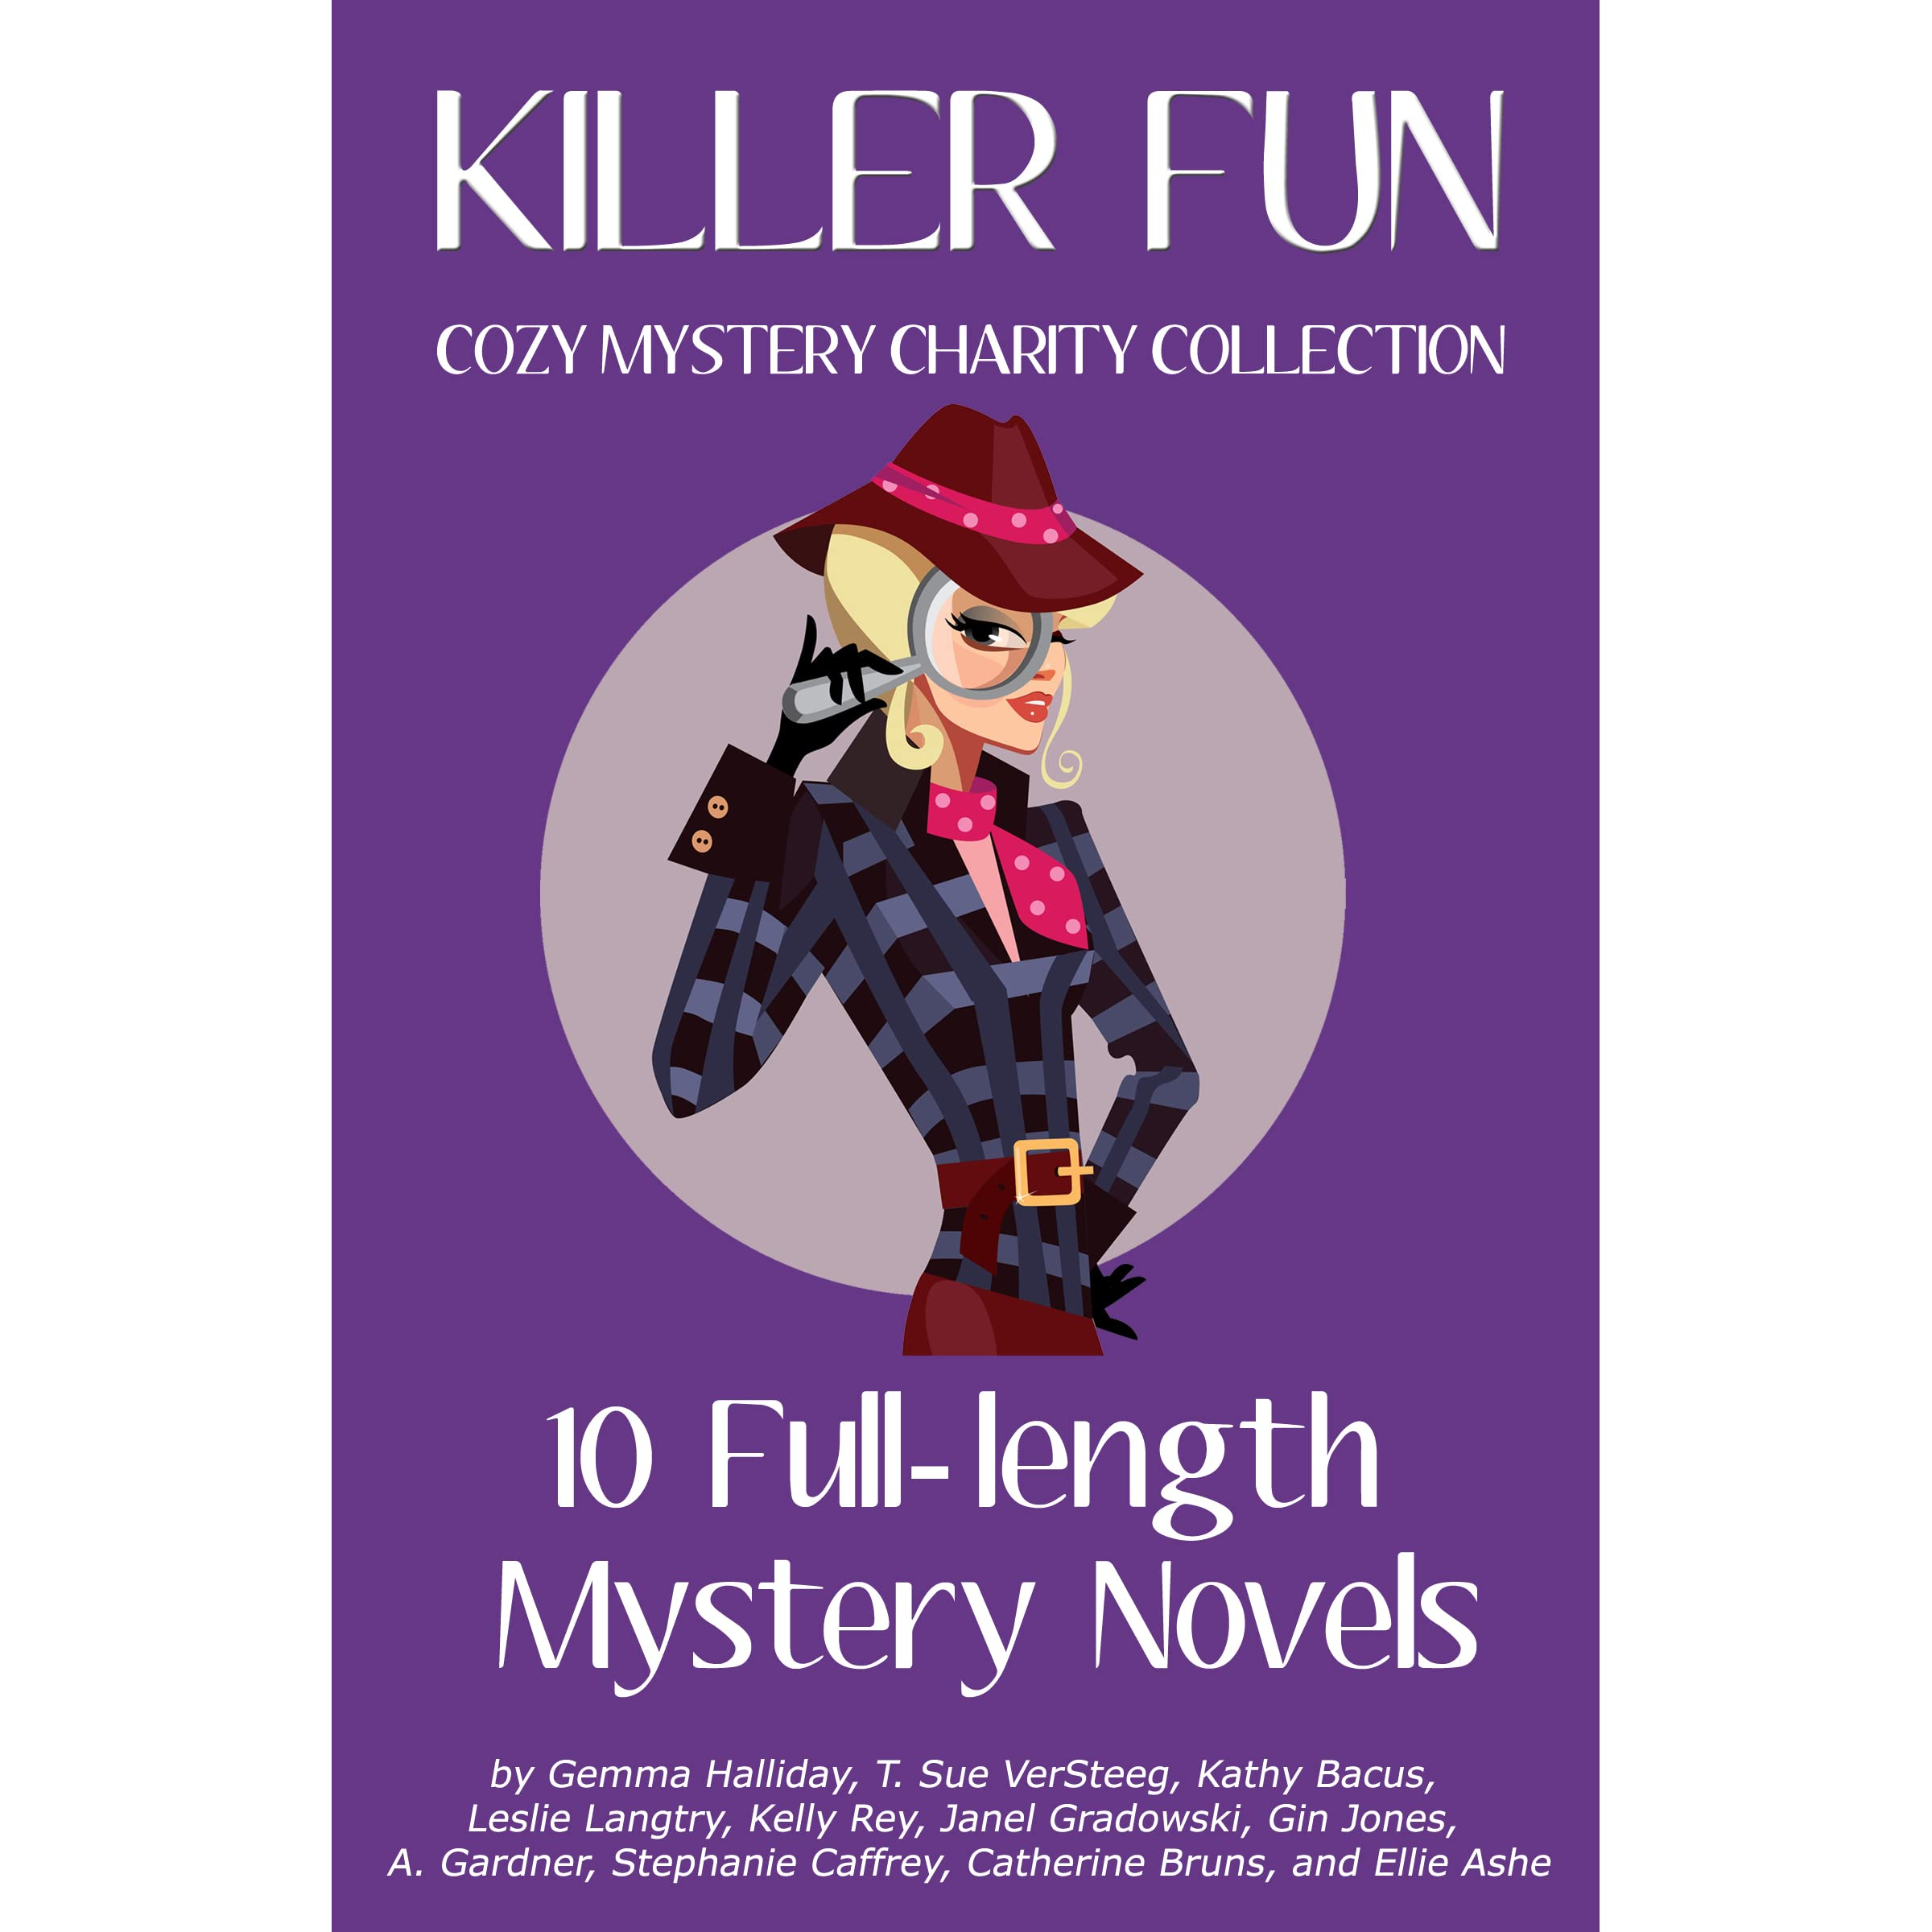 Killer Fun: Cozy Mystery Charity Collection By Gemma